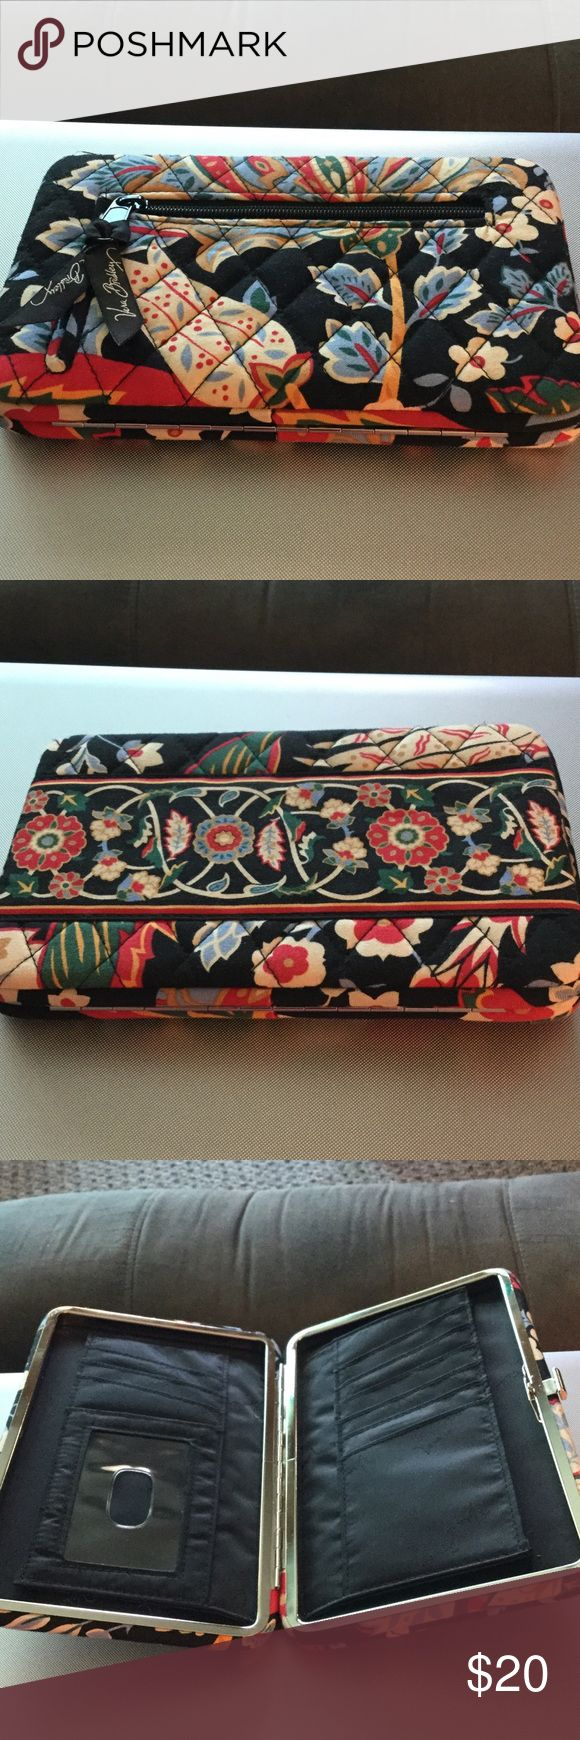 Vera Bradley Clasp Fastener Skinny Wallet Nice clean wallet, great condition. Lots of card slots, zippered change holder outside. Red, blue cream floral. Vera Bradley Bags Wallets